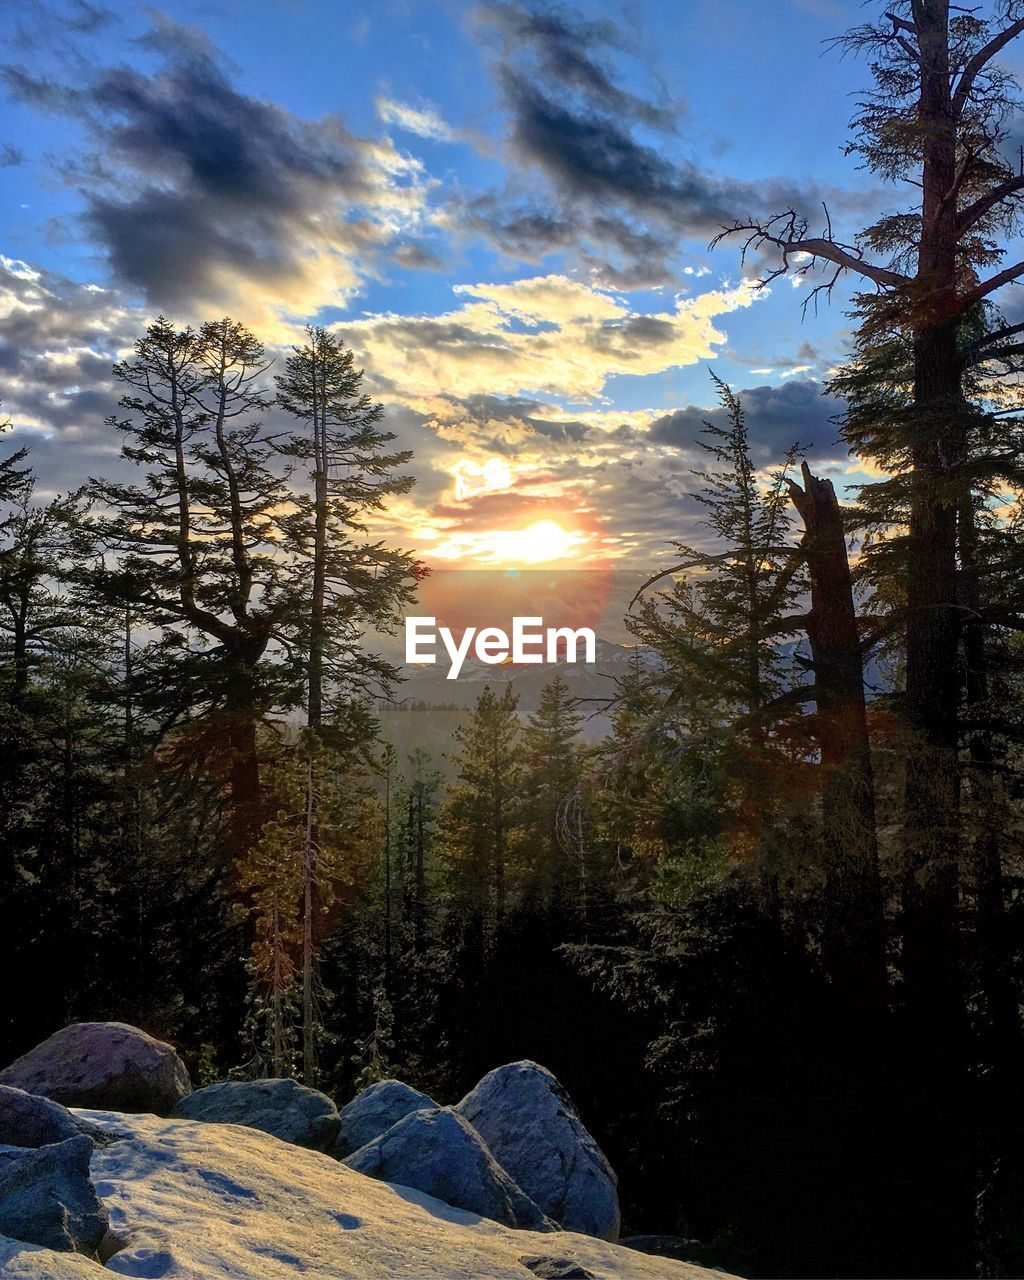 Scenic View Of Forest Against Cloudy Sky During Sunset